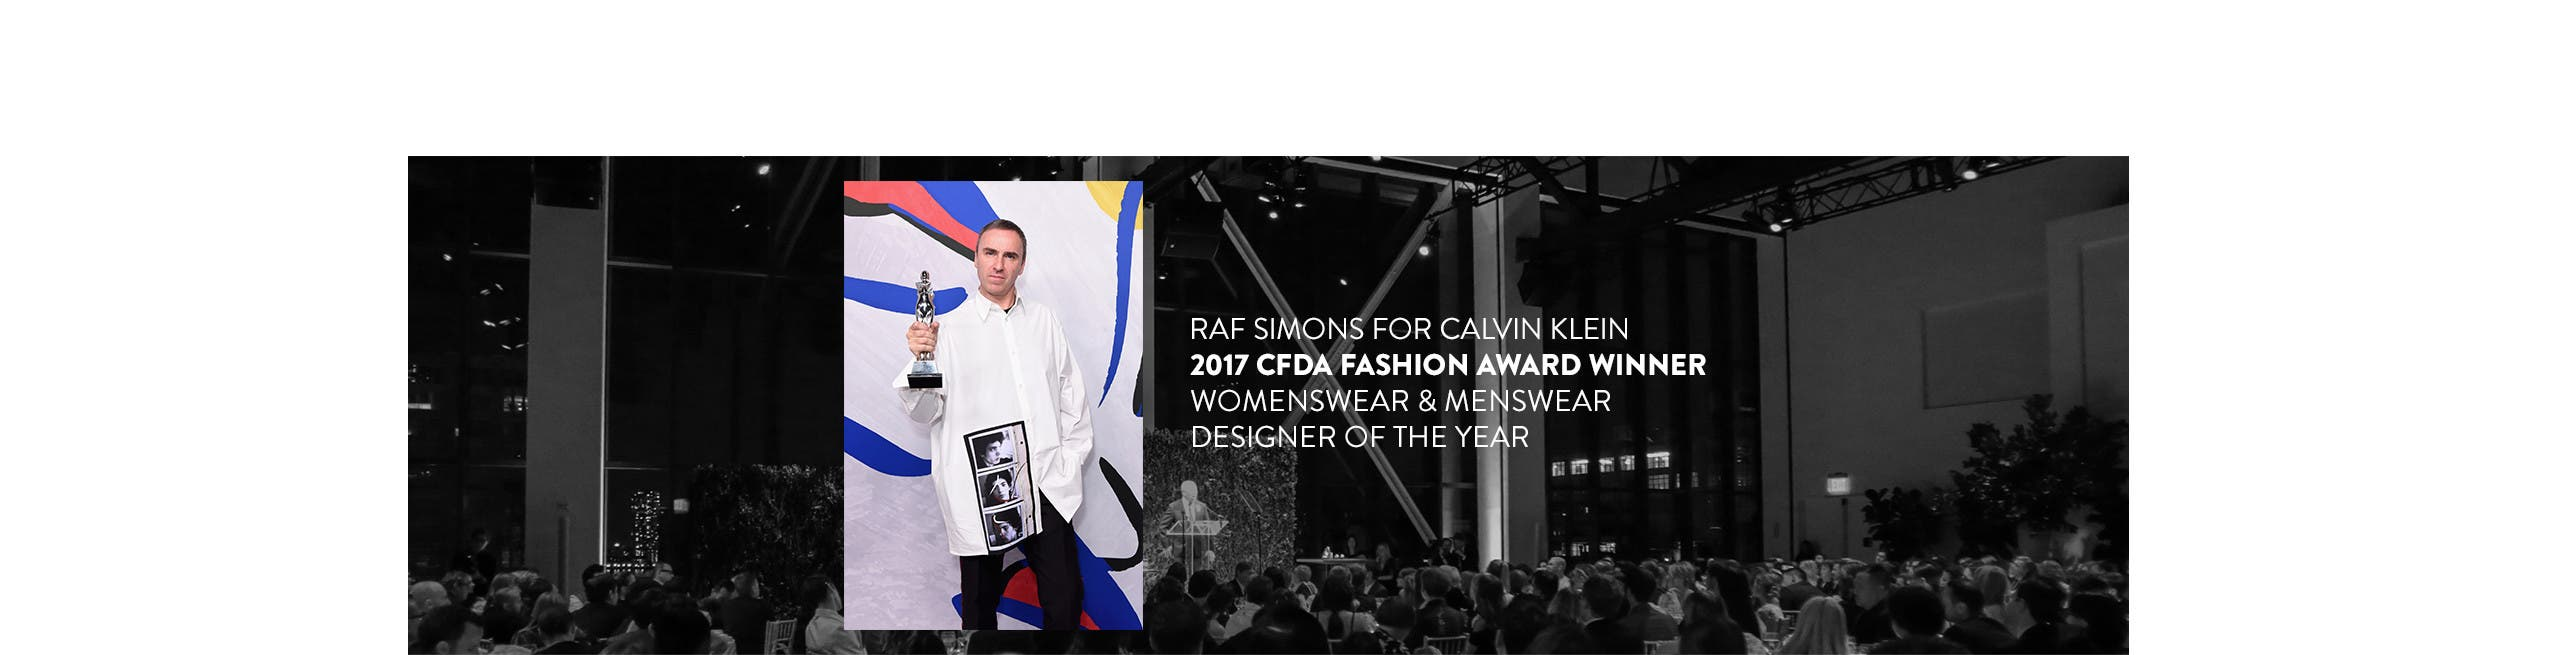 2017 CFDA Fashion Award Winner: Raf Simons for Calvin Klein wins Womenswear and Menswear Designer of the Year.